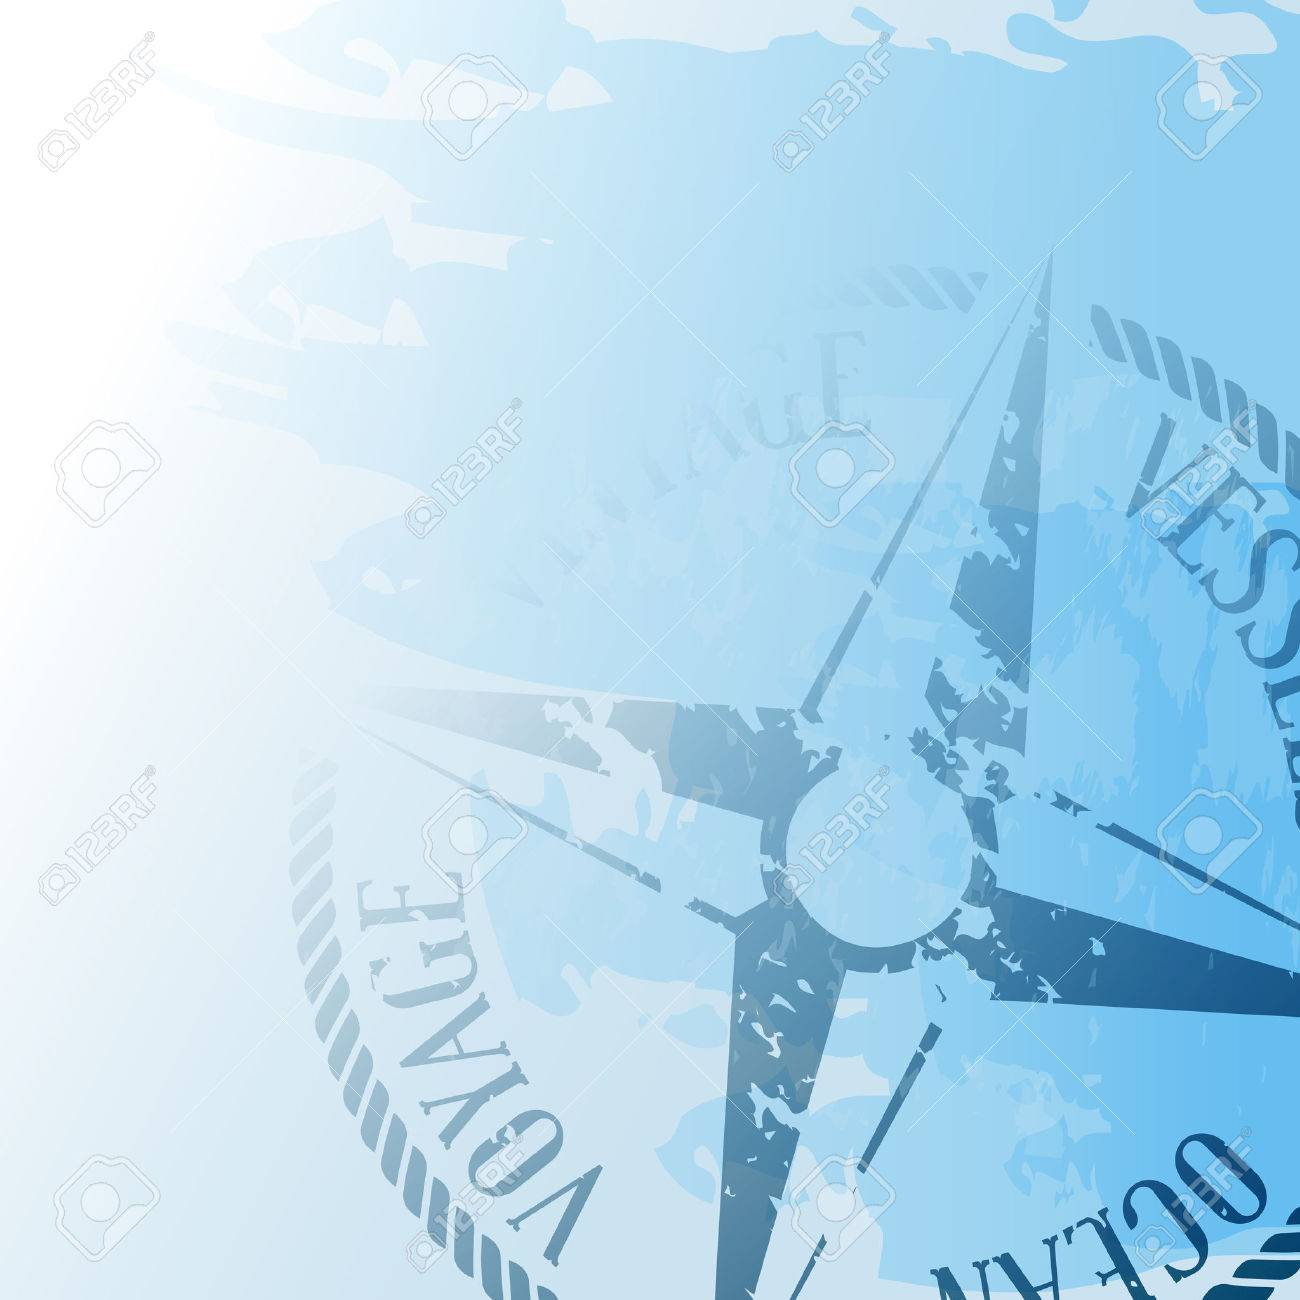 Nautical background with wind rose compass - 28437031